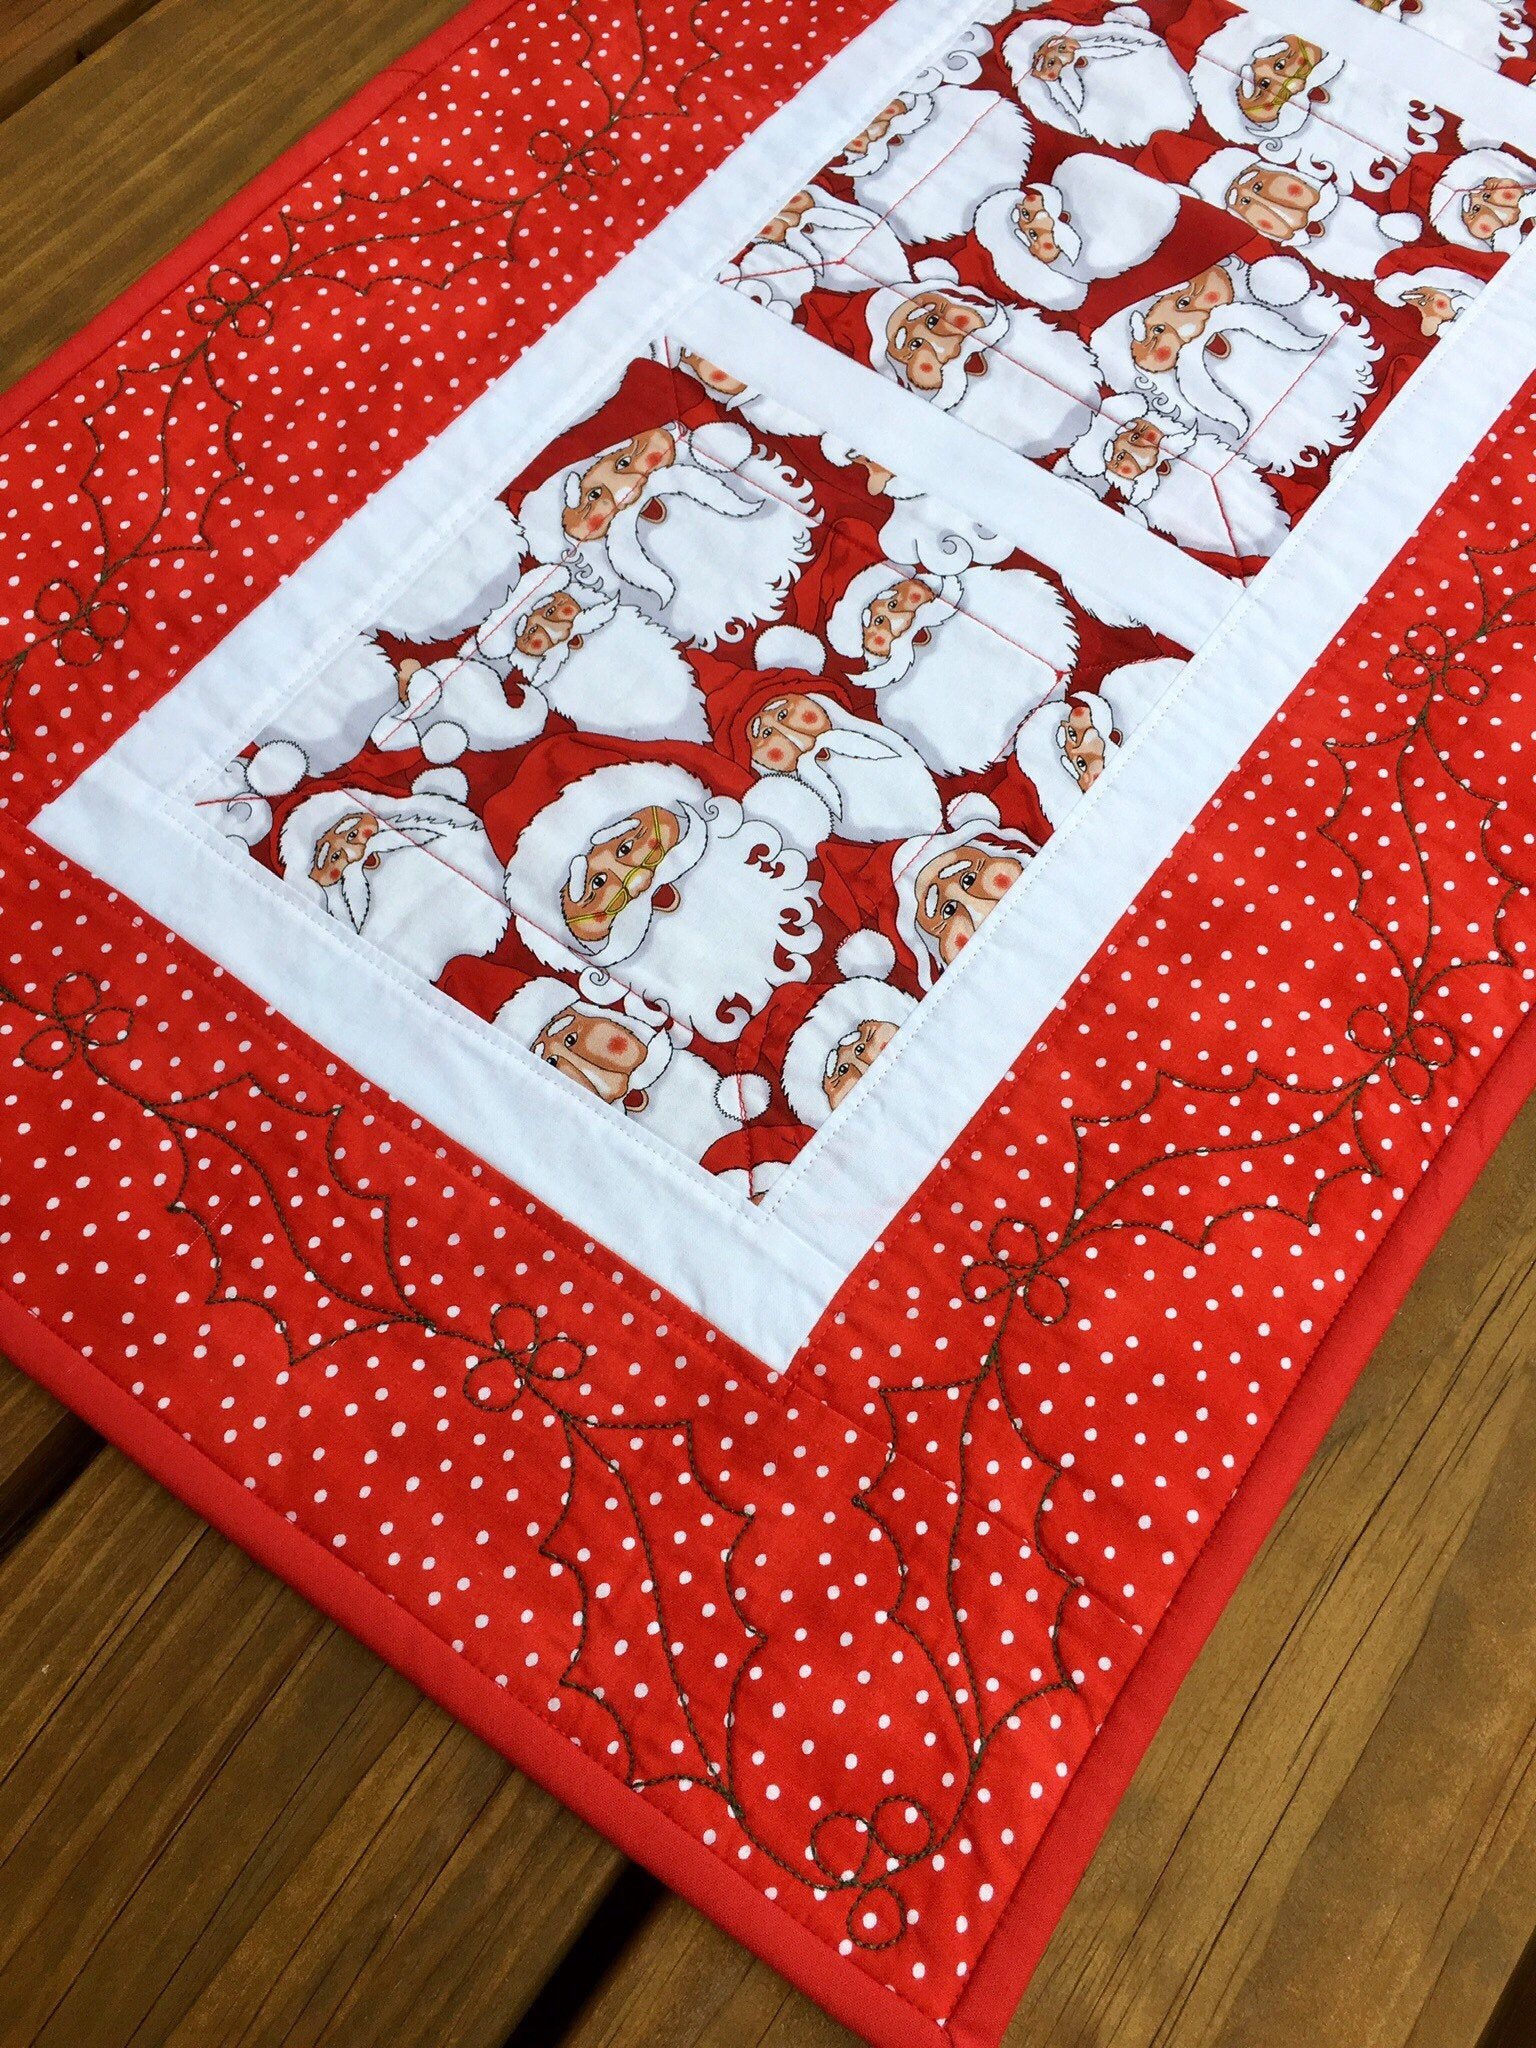 Large Santa Quilted Table Runner Red White And Black Christmas Decor Modern Santa Table Toppers Christmas Table Decorations Kid Friendly Quilted Table Runner Santa Quilt Christmas Table Decorations